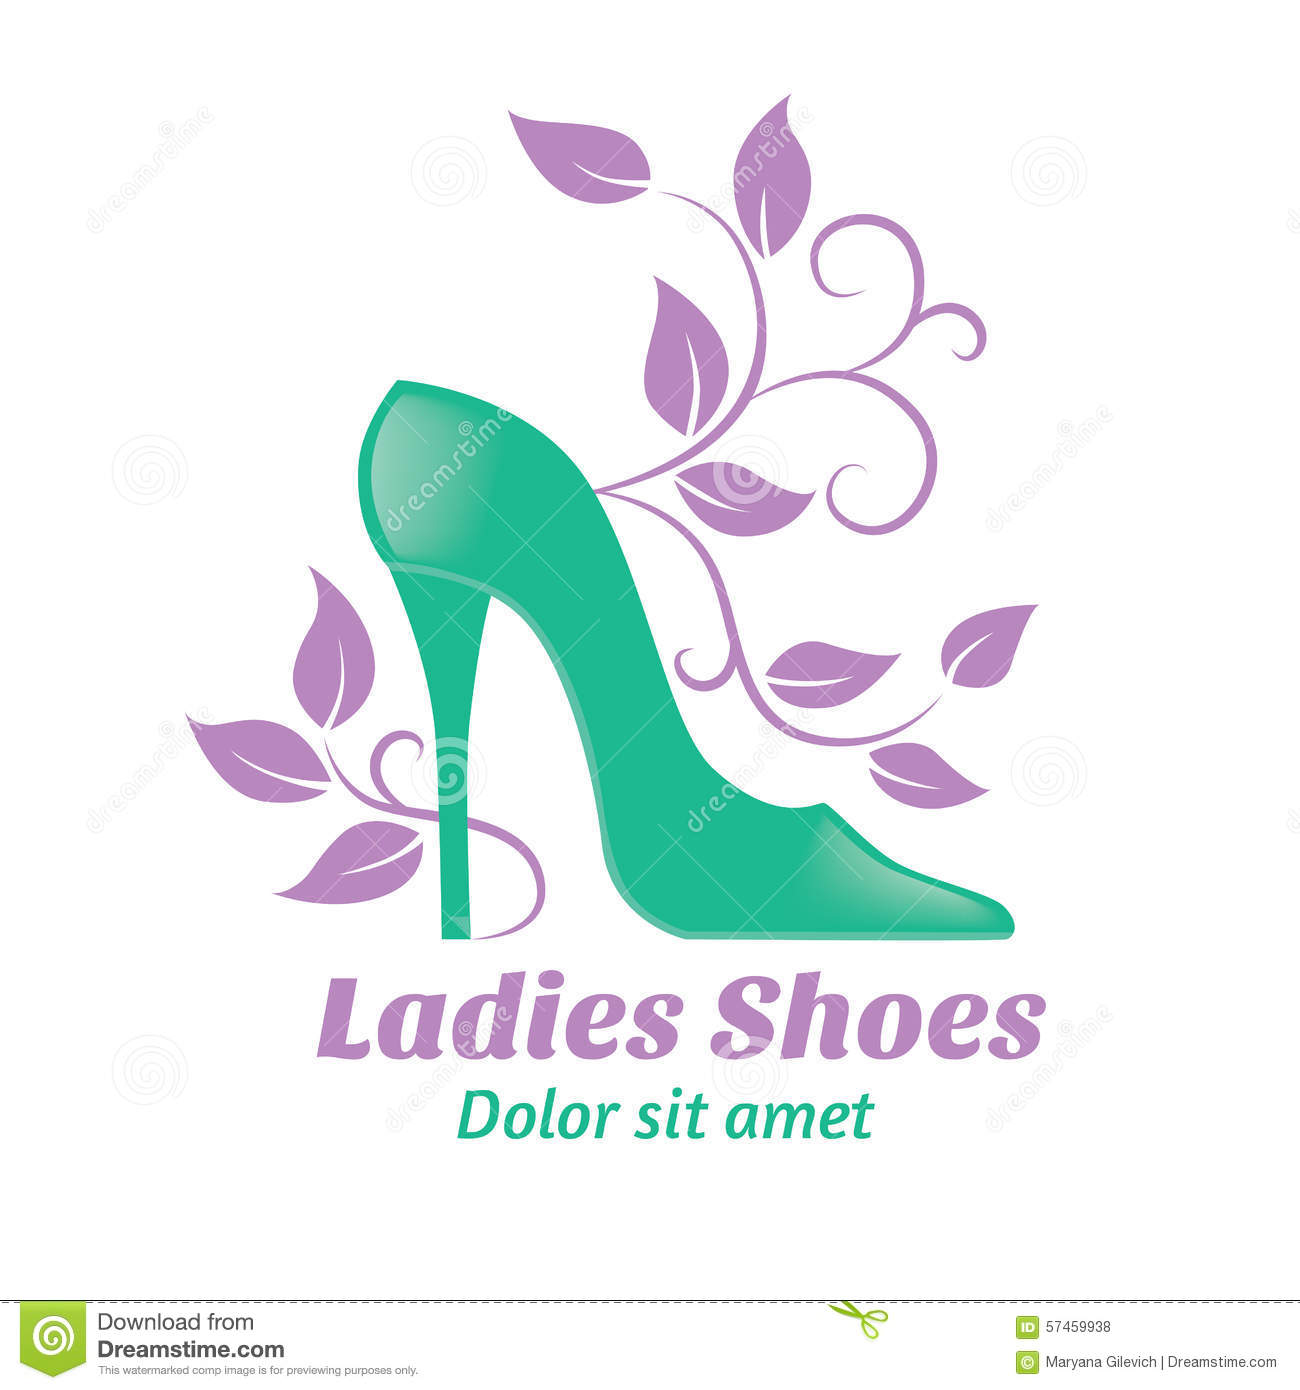 Logo Shoes Stock Vector - Image: 53804173